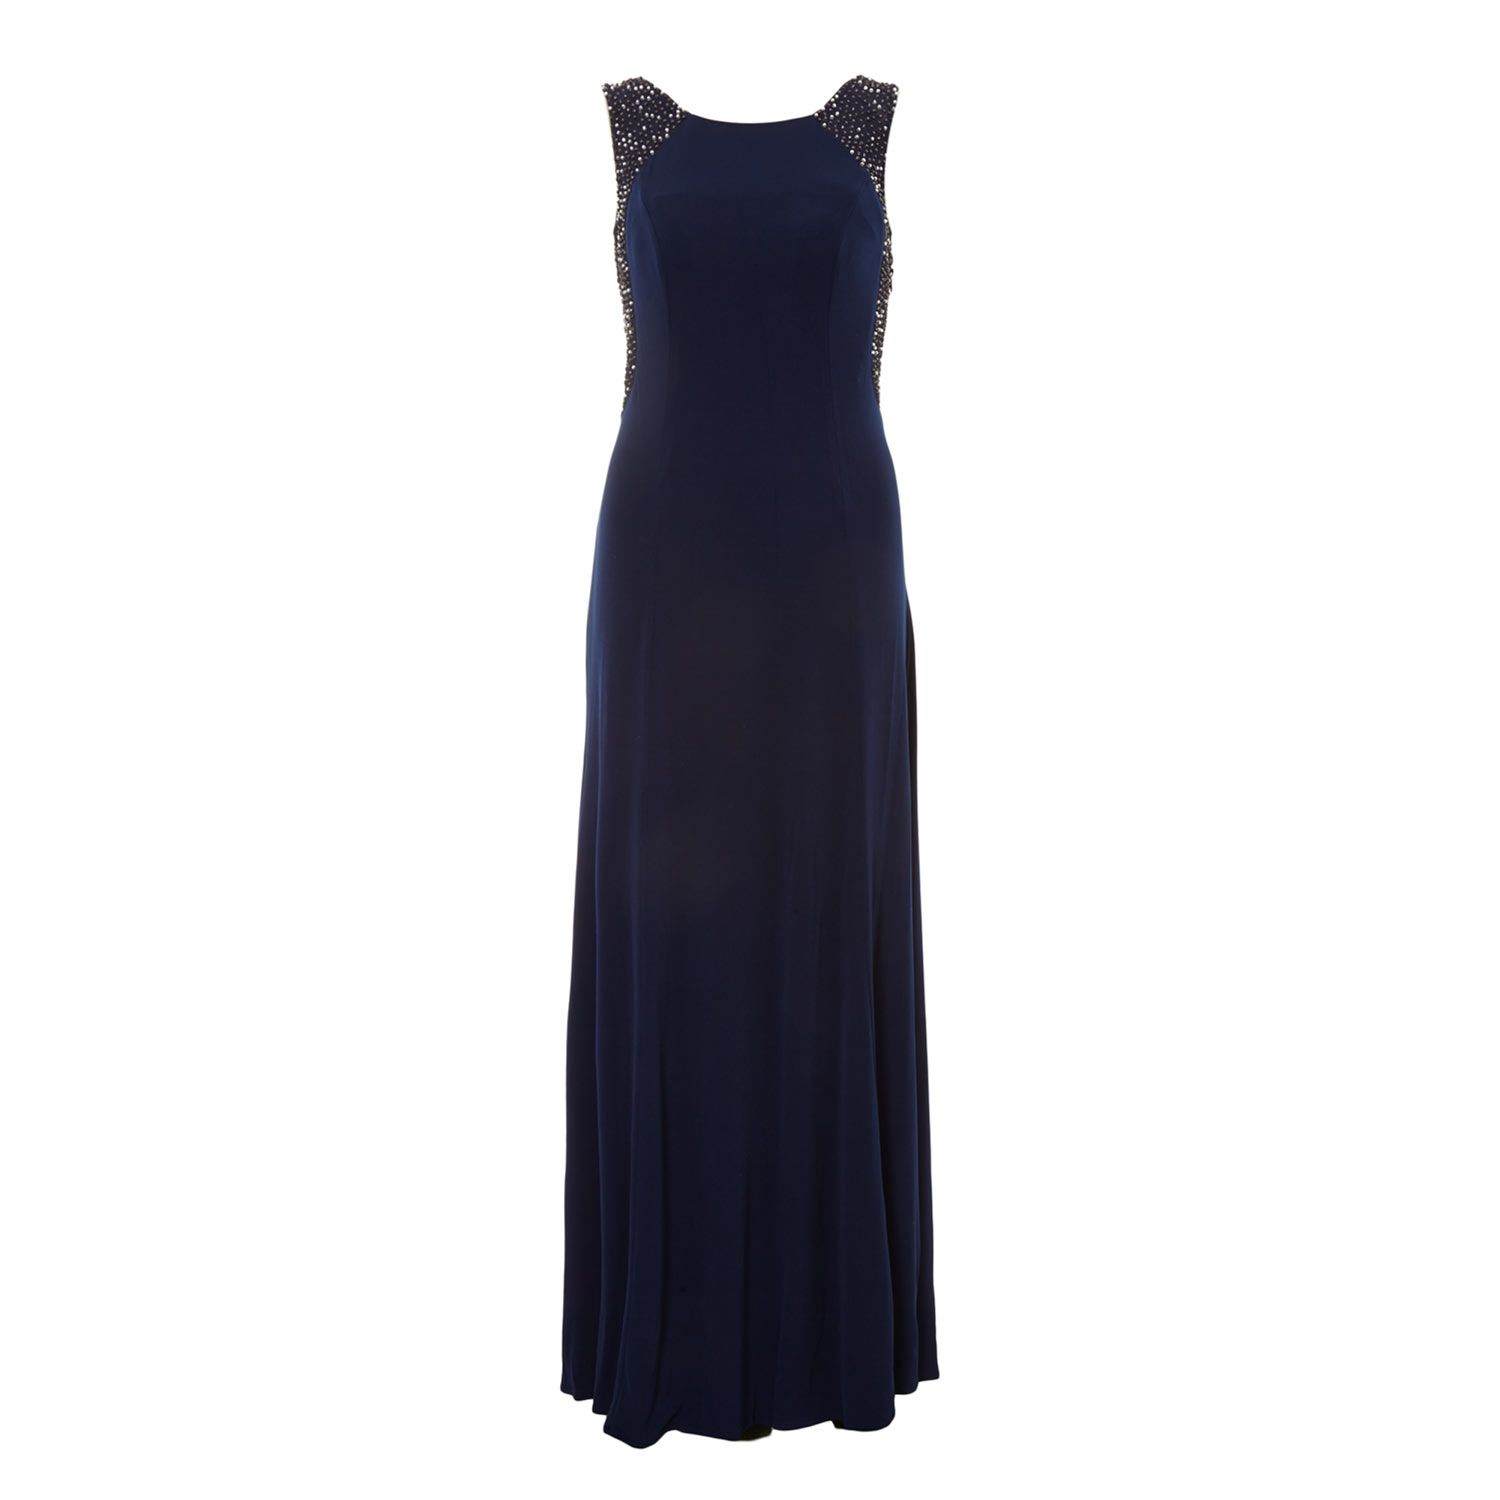 Cachet Navy Blue Embellished Draped Evening Dress